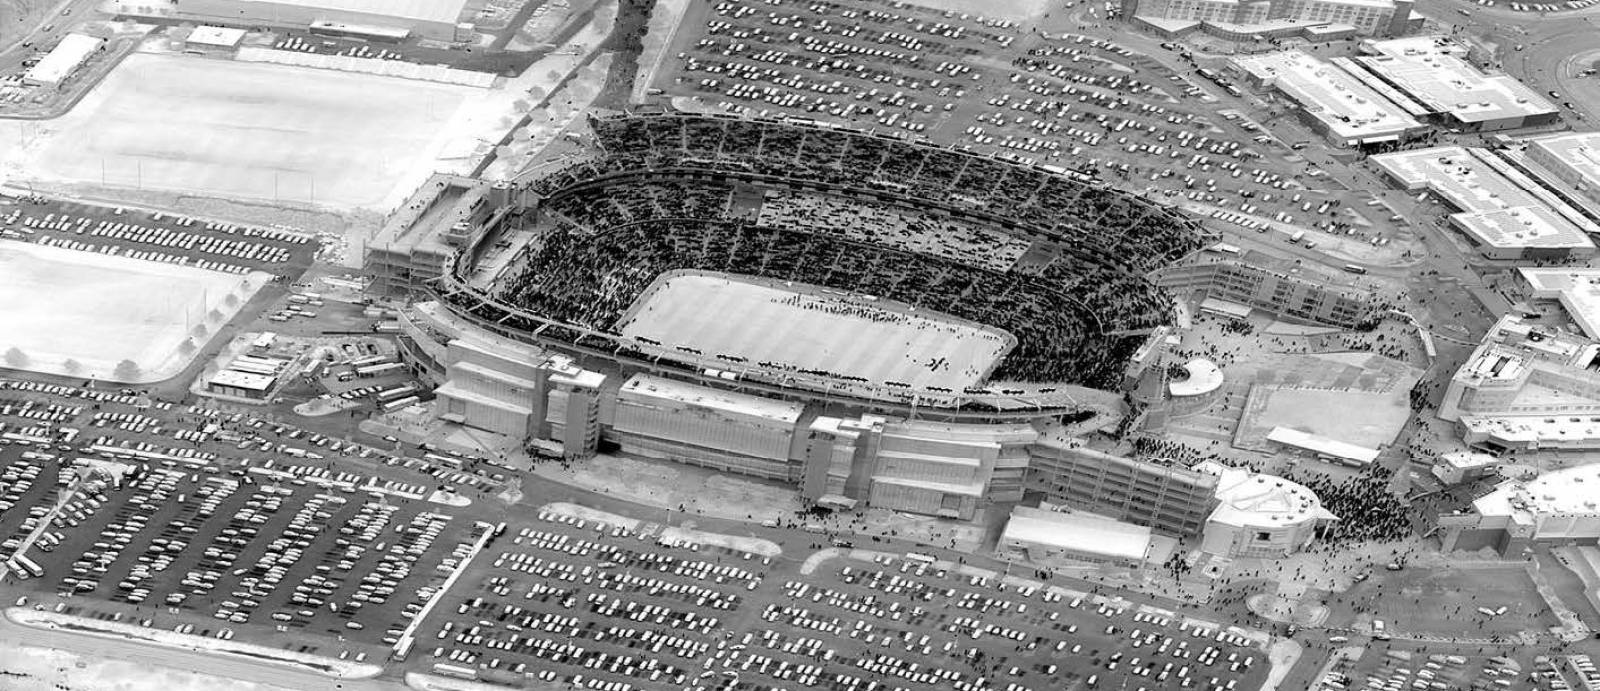 Wide-area infrared imagery of Gillette Stadium taken with the digital-focal-plane-array camera.